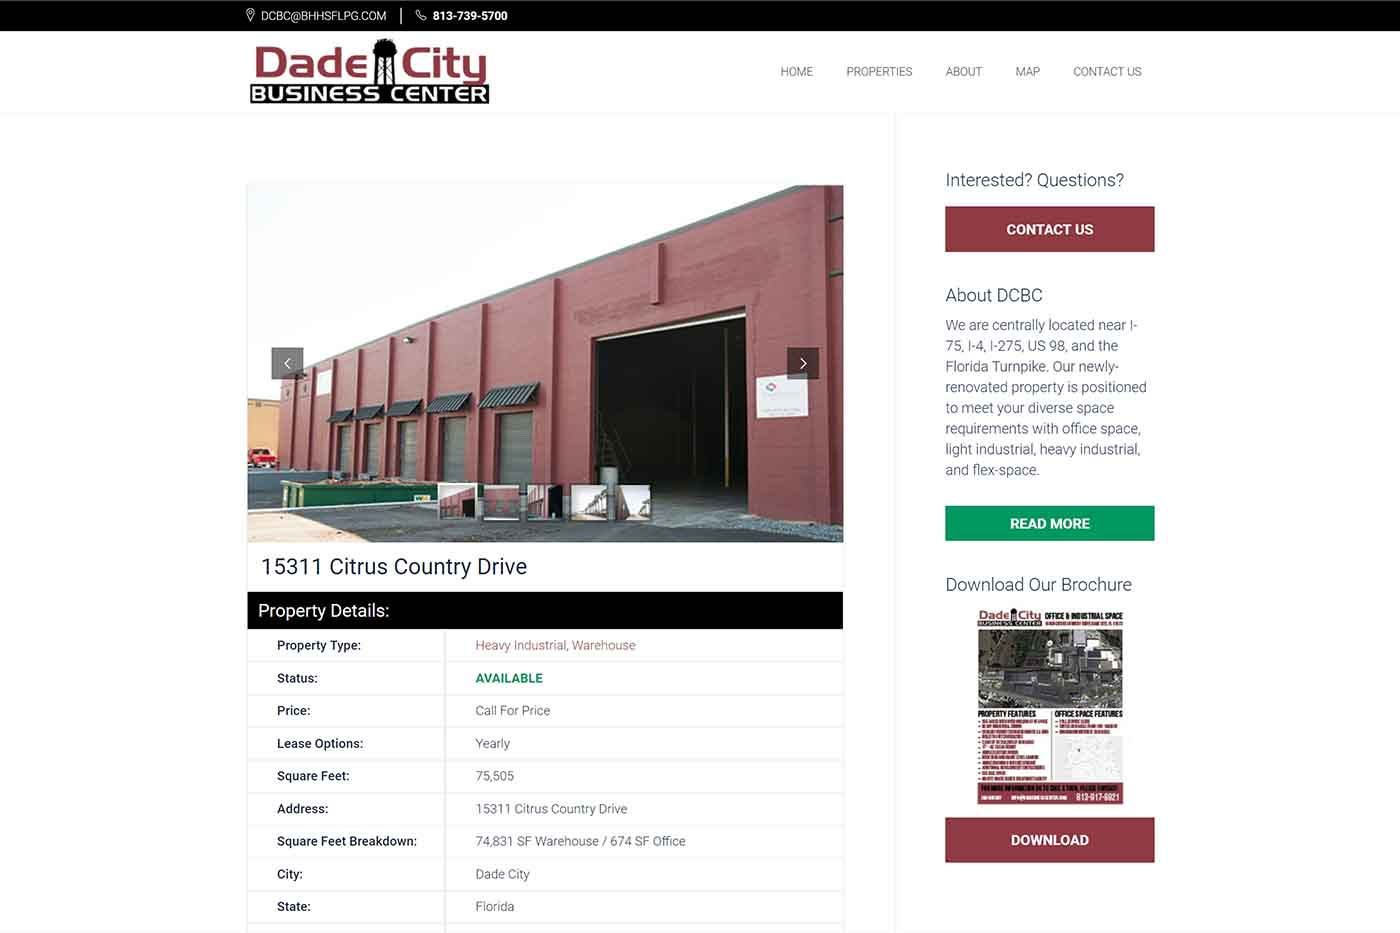 Dade City Business Center